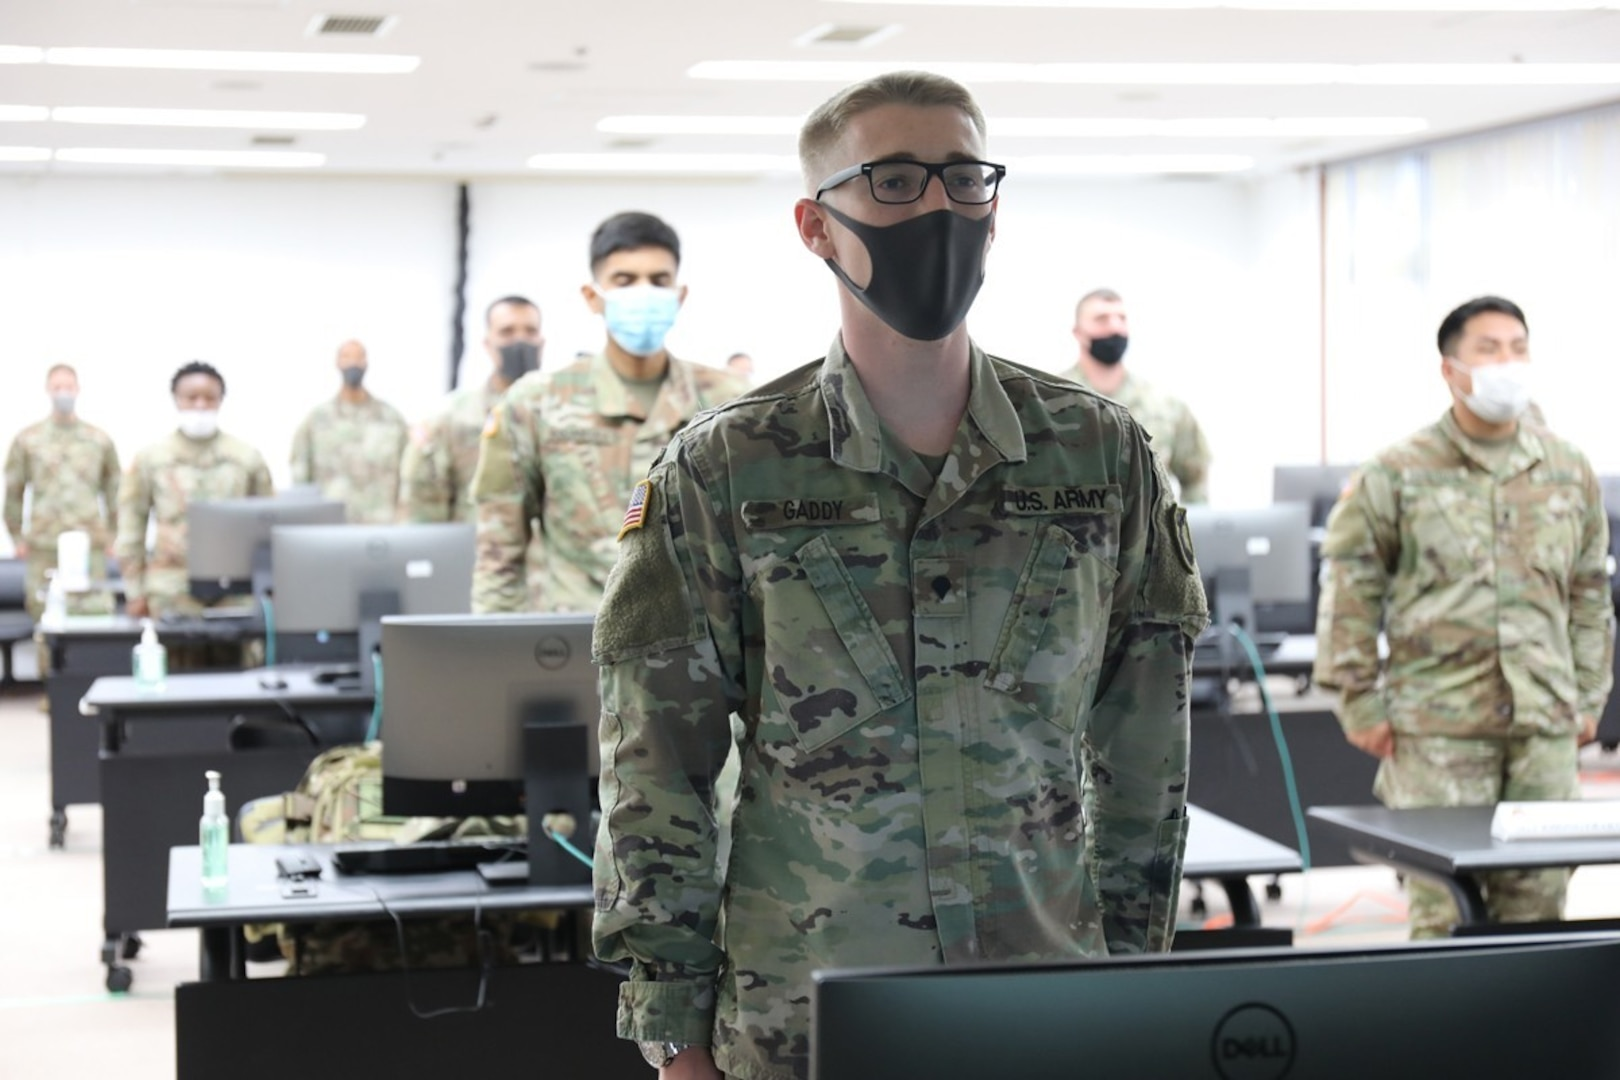 20 future NCOs graduate from distance-learning Basic Leader Course at Camp Zama